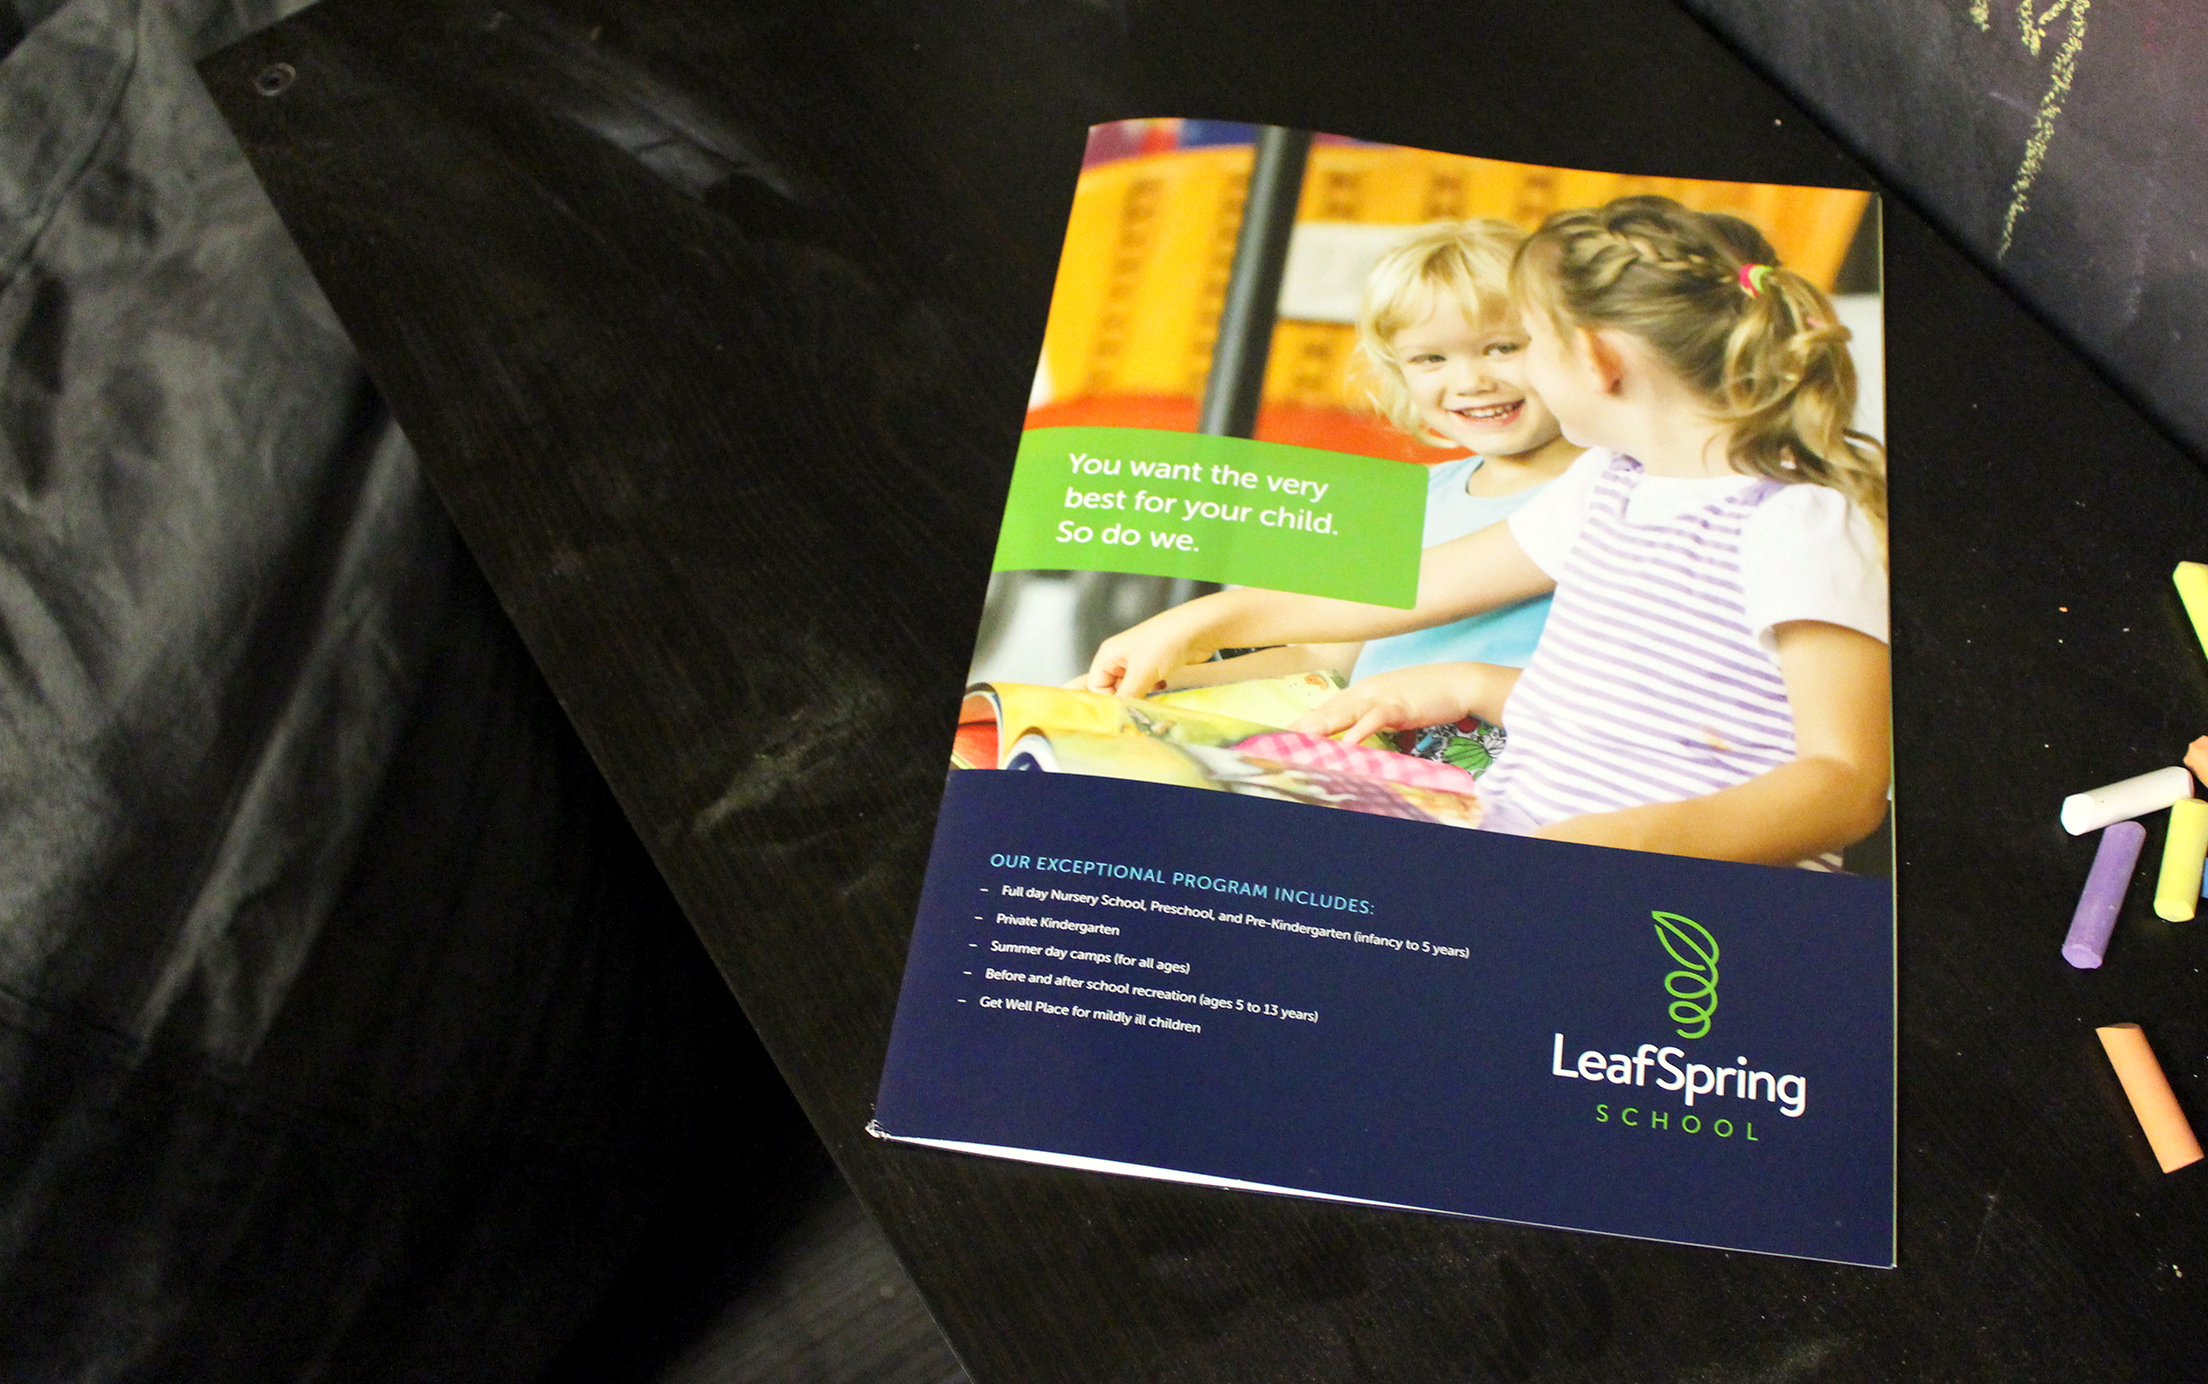 Inquiry Packet for LeafSpring School